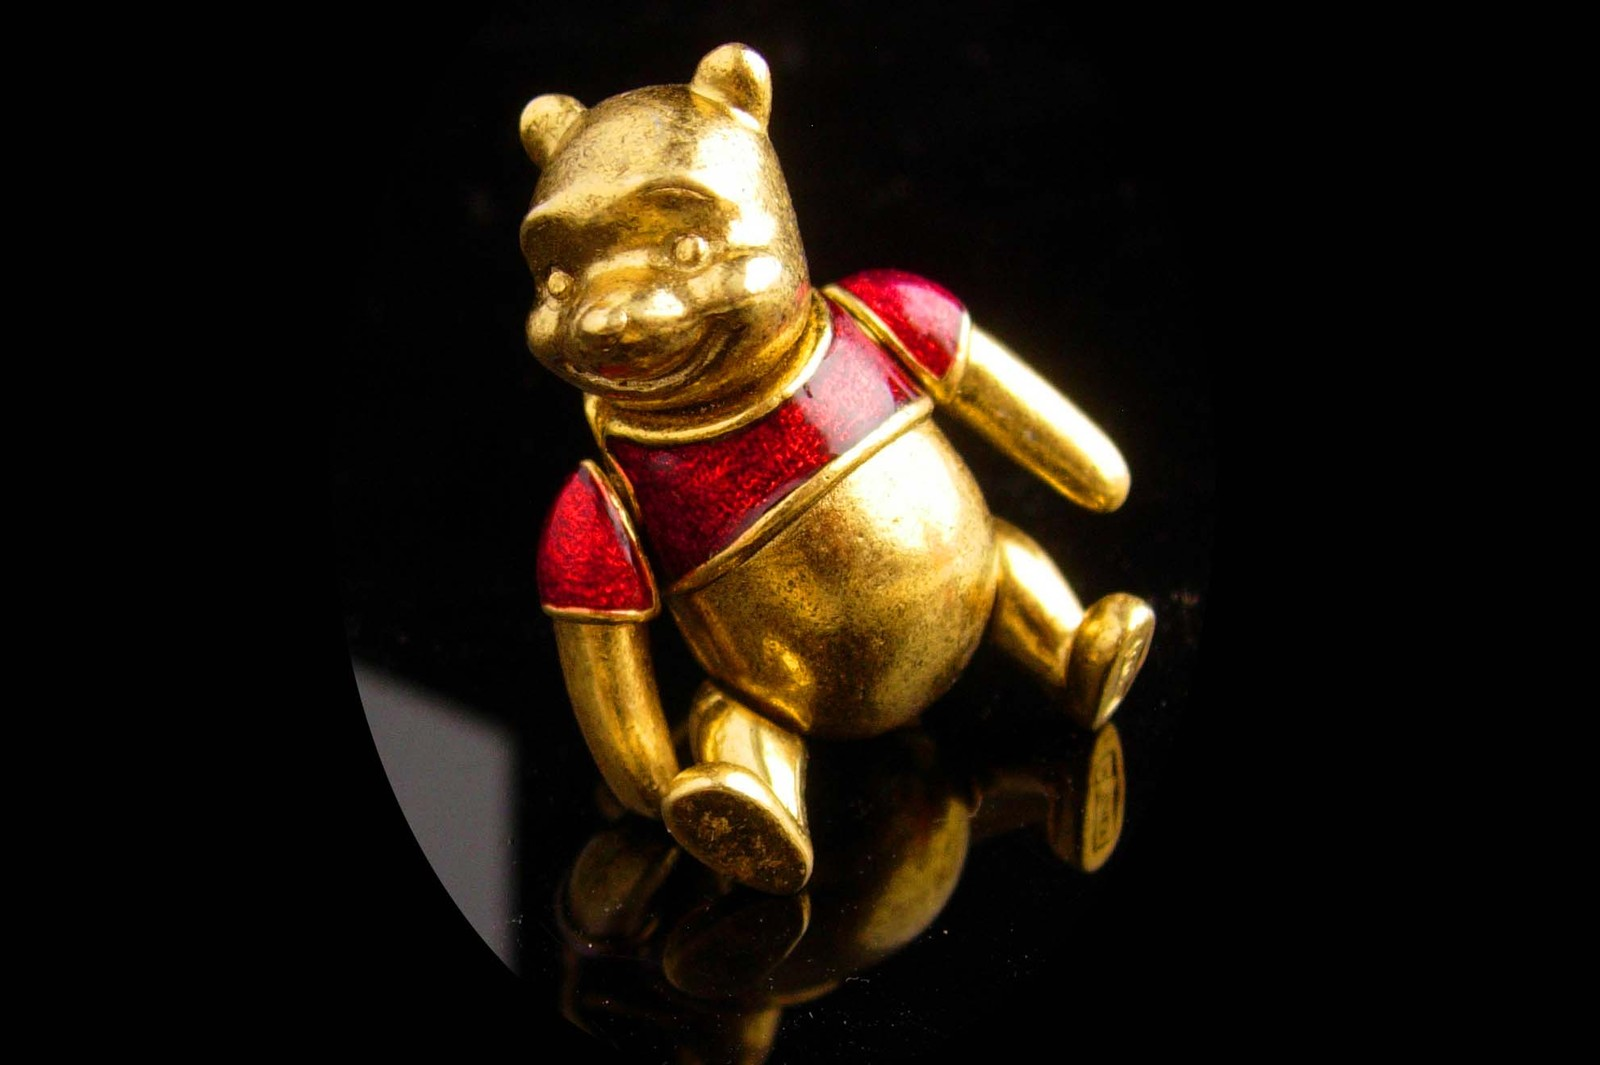 Mechanical bear brooch - pooh moveable pin - Vintage  Lapel Pin novelty whimsica